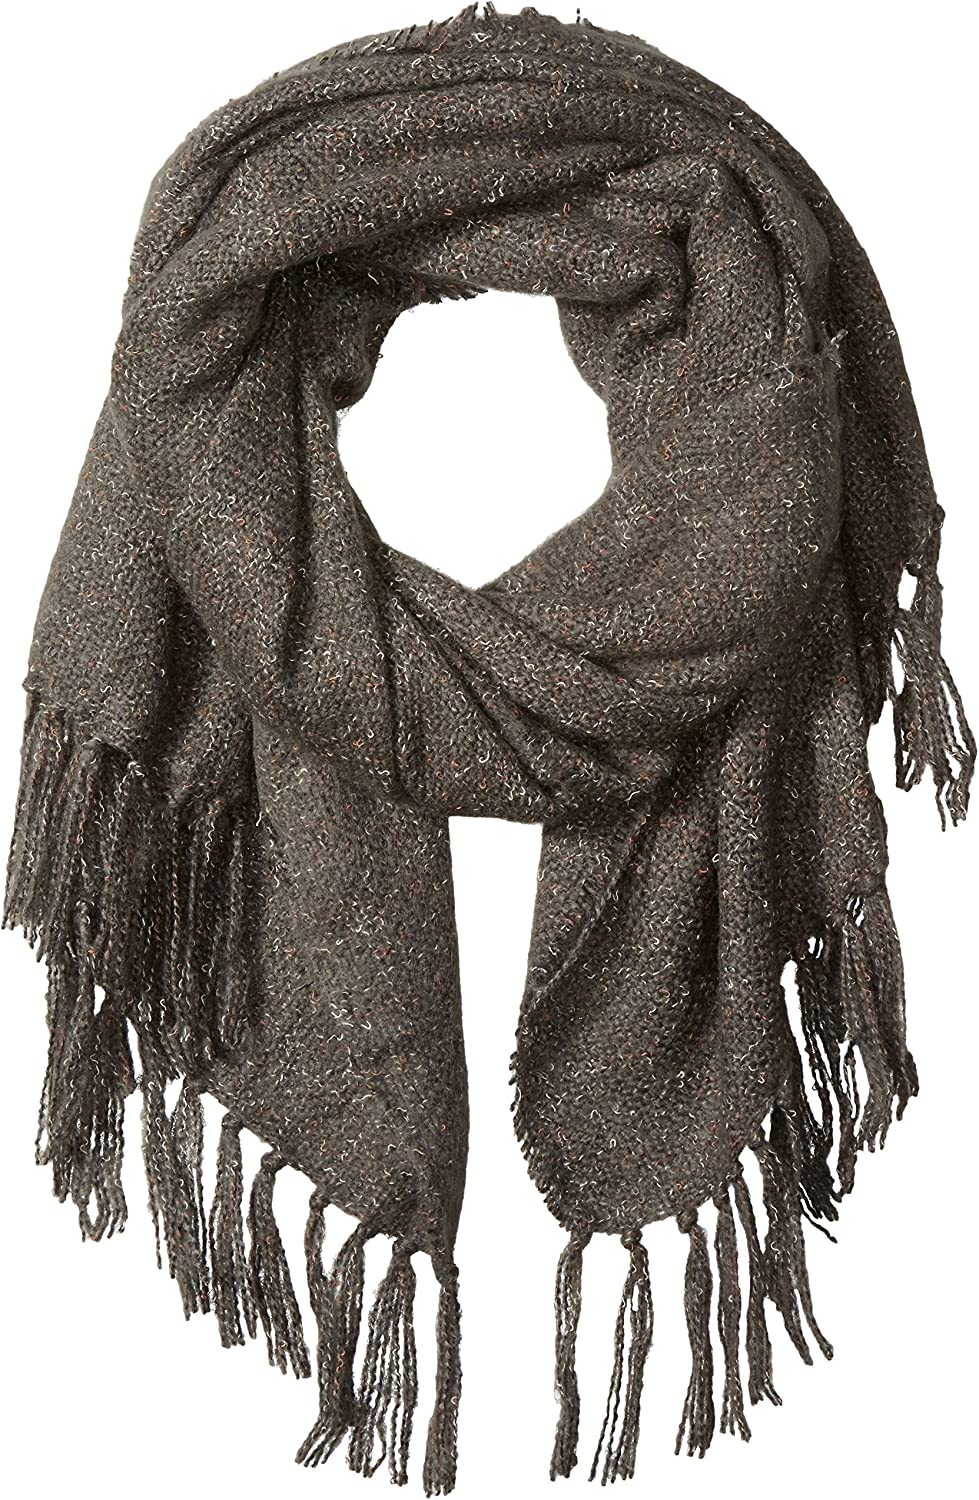 D&Y Women's Solid Woven Oblong Scarf with Fringe Trim